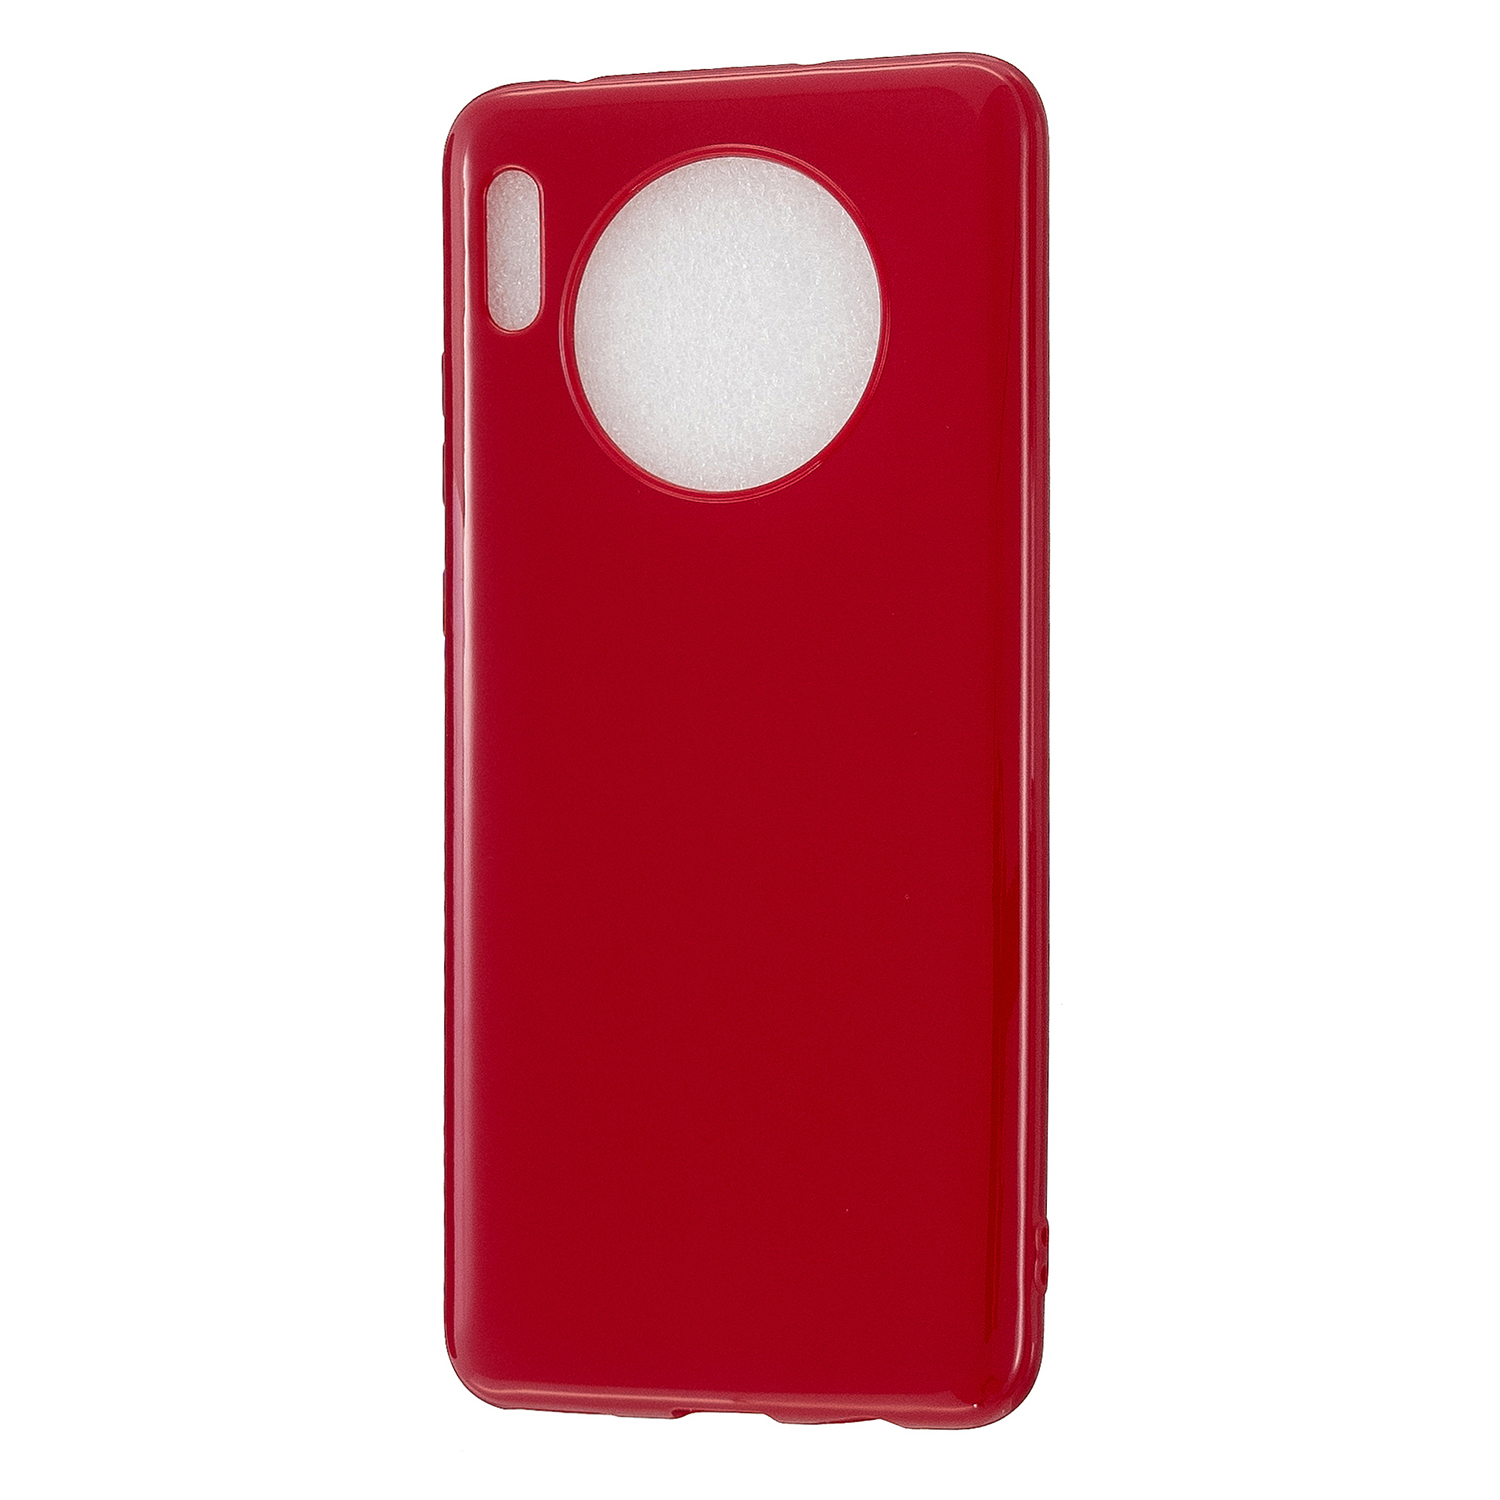 For HUAWEI Mate 30/30 Lite/30 Pro Cellphone Case Simple Profile Soft TPU Shock-Absorption Phone Cover Rose red